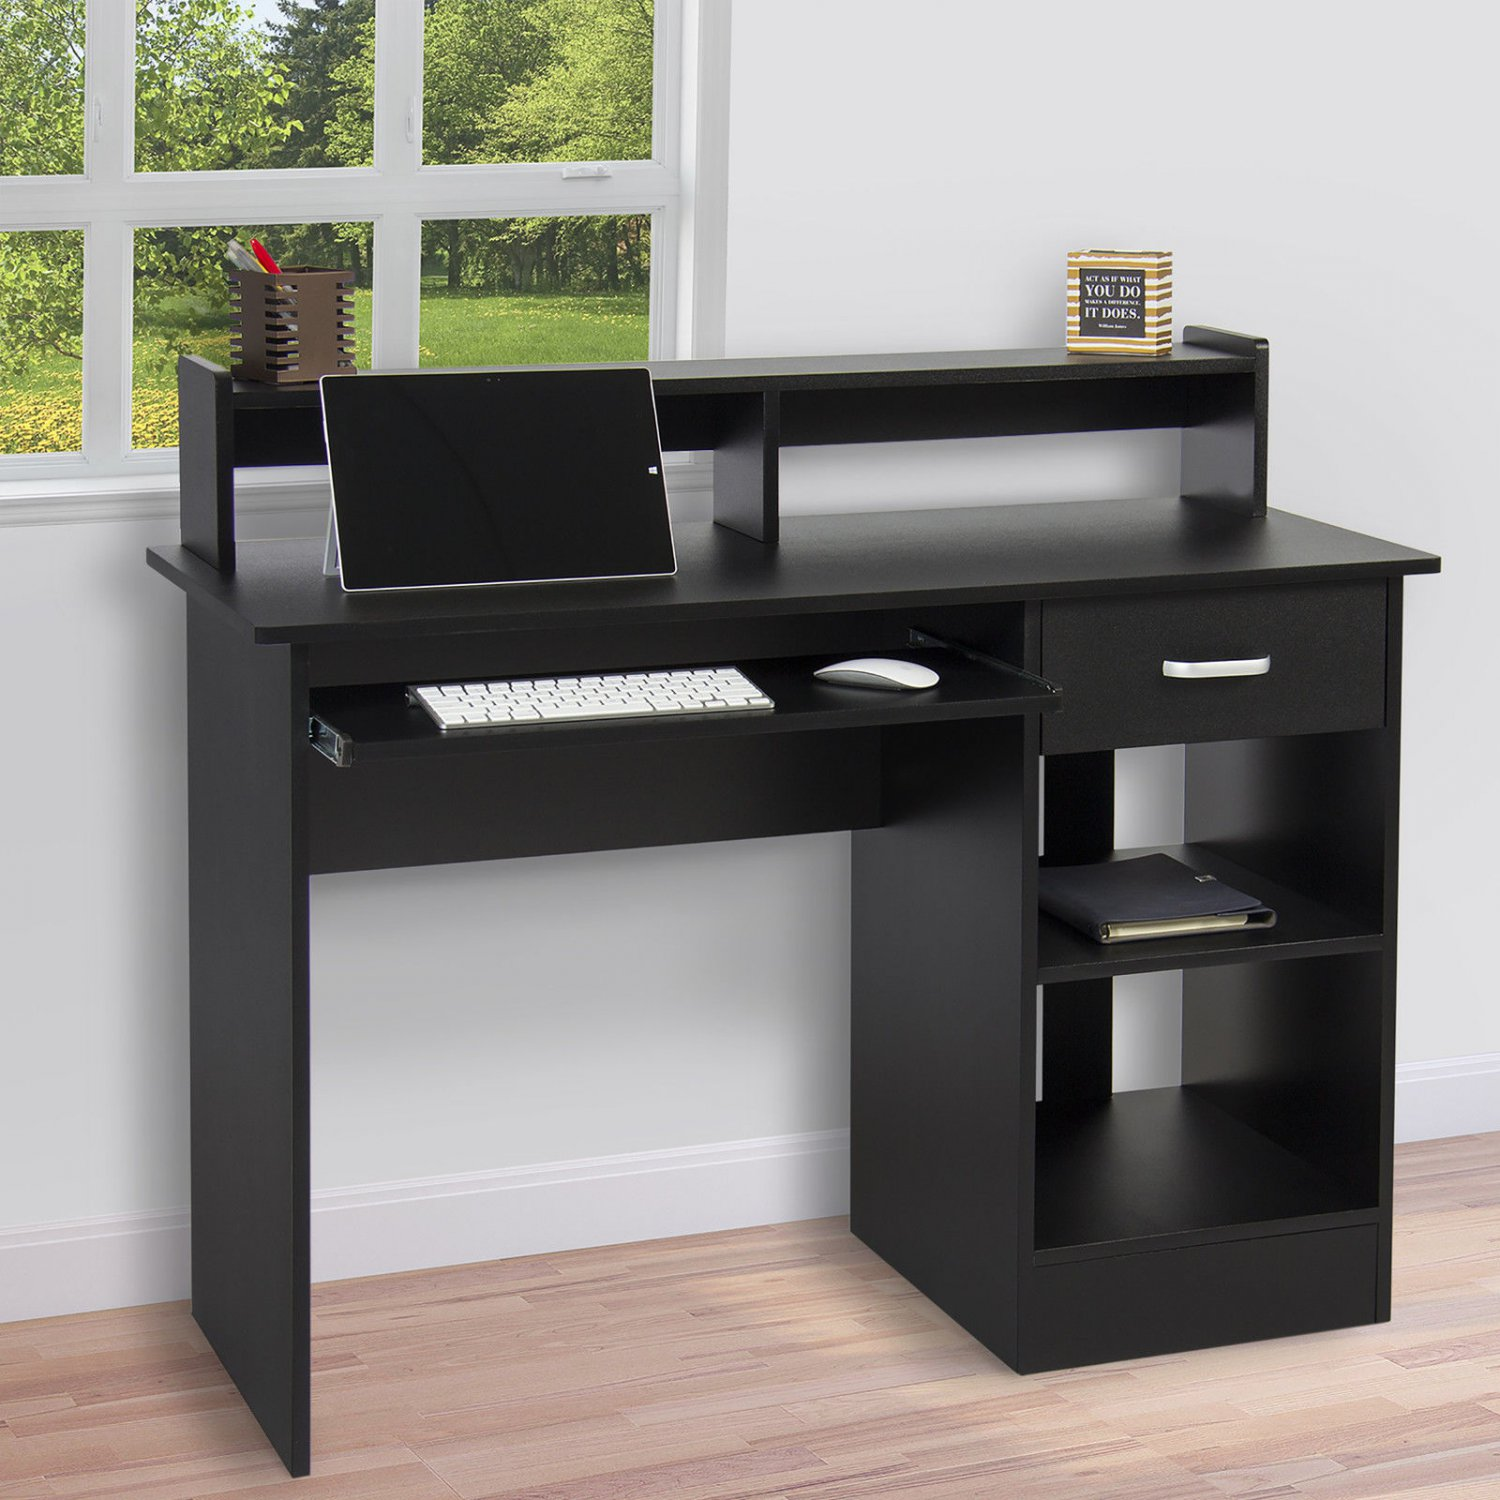 Computer Desk Home Laptop Table College Home Office Furniture Work Station Bk